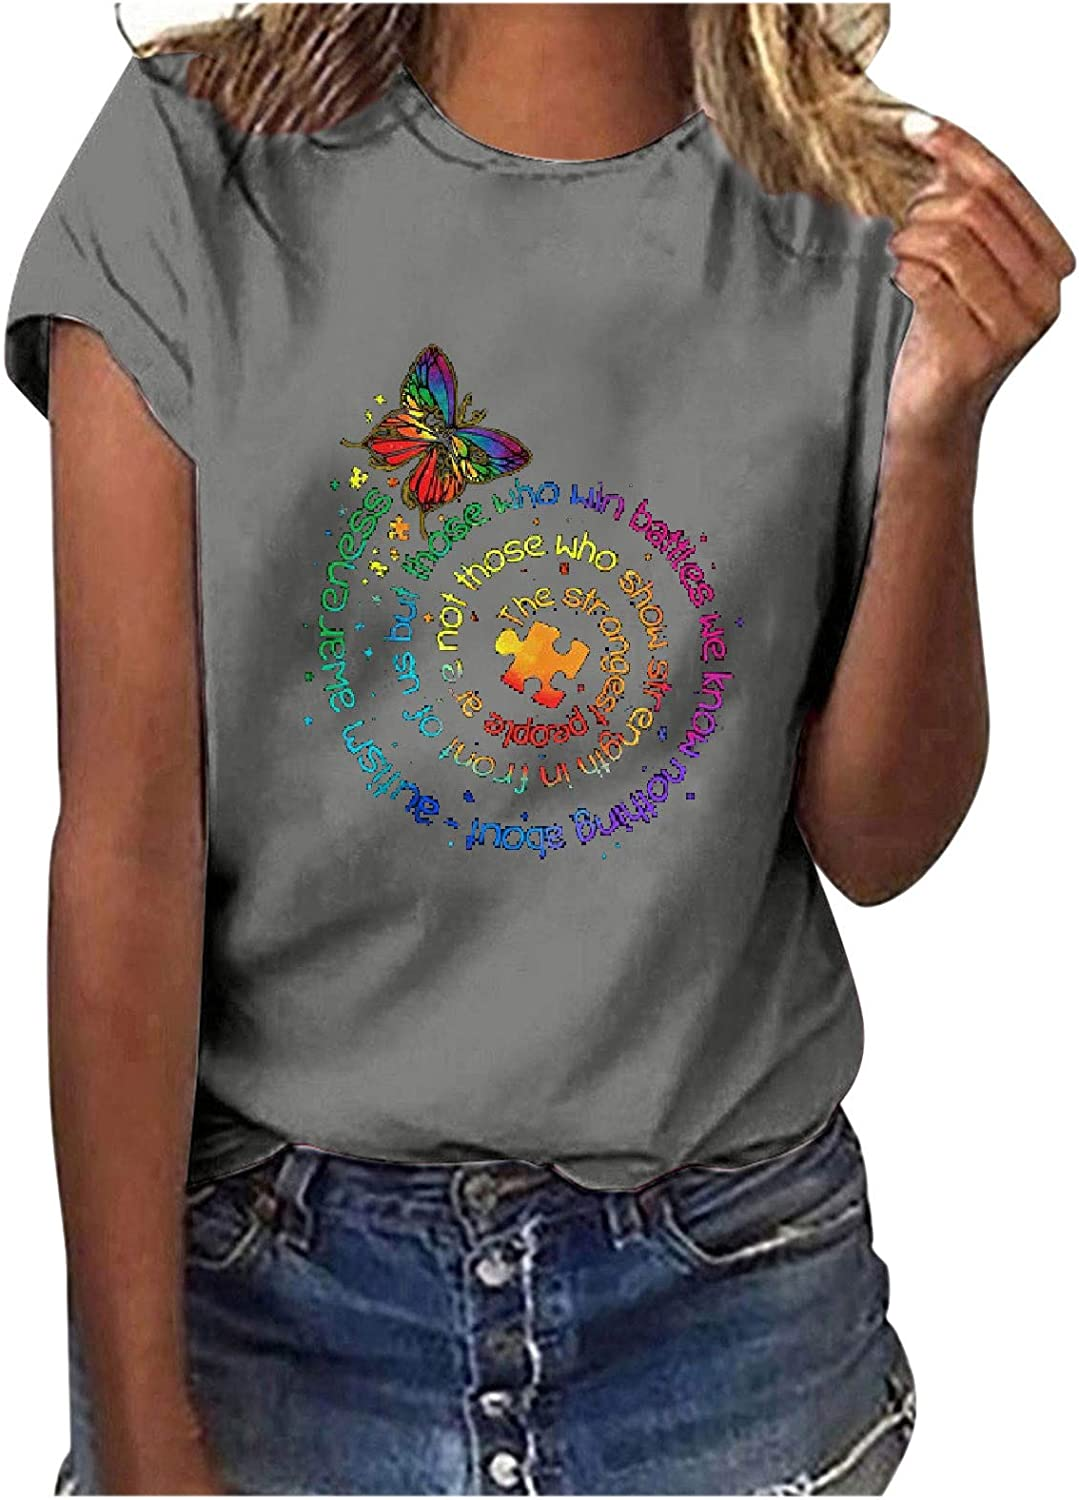 Women Blouses and Tops Fashion for Size Discount mail order Work Prin Sunflower Year-end gift Plus